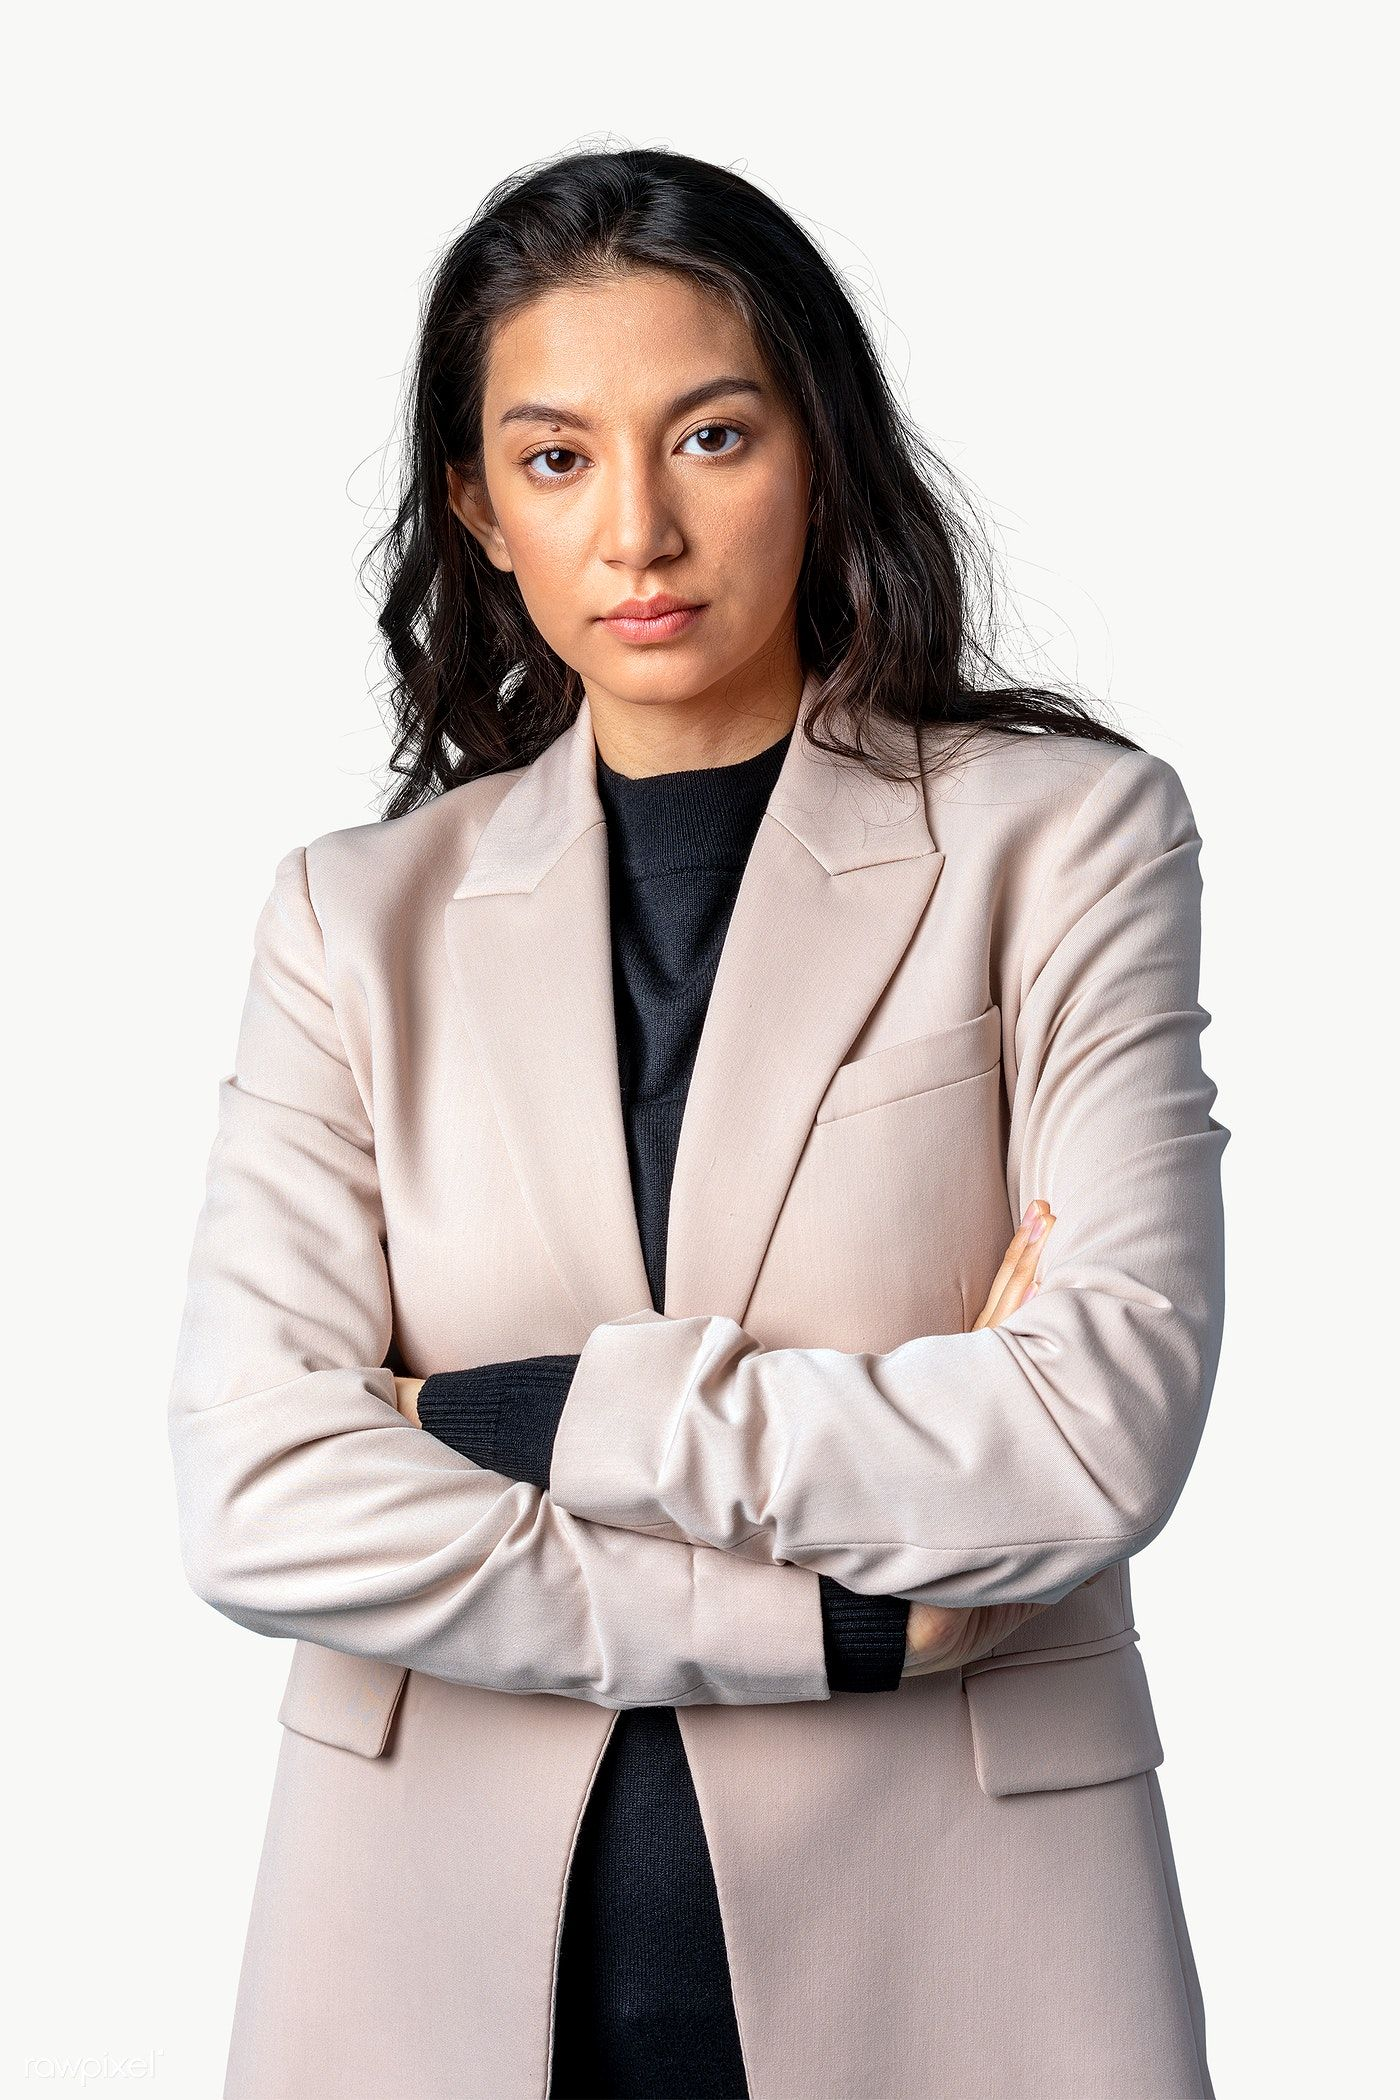 Download Premium Png Of Middle Eastern Woman In A Blazer Transparent Png In 2020 Business Women Modesty Fashion Winter Women